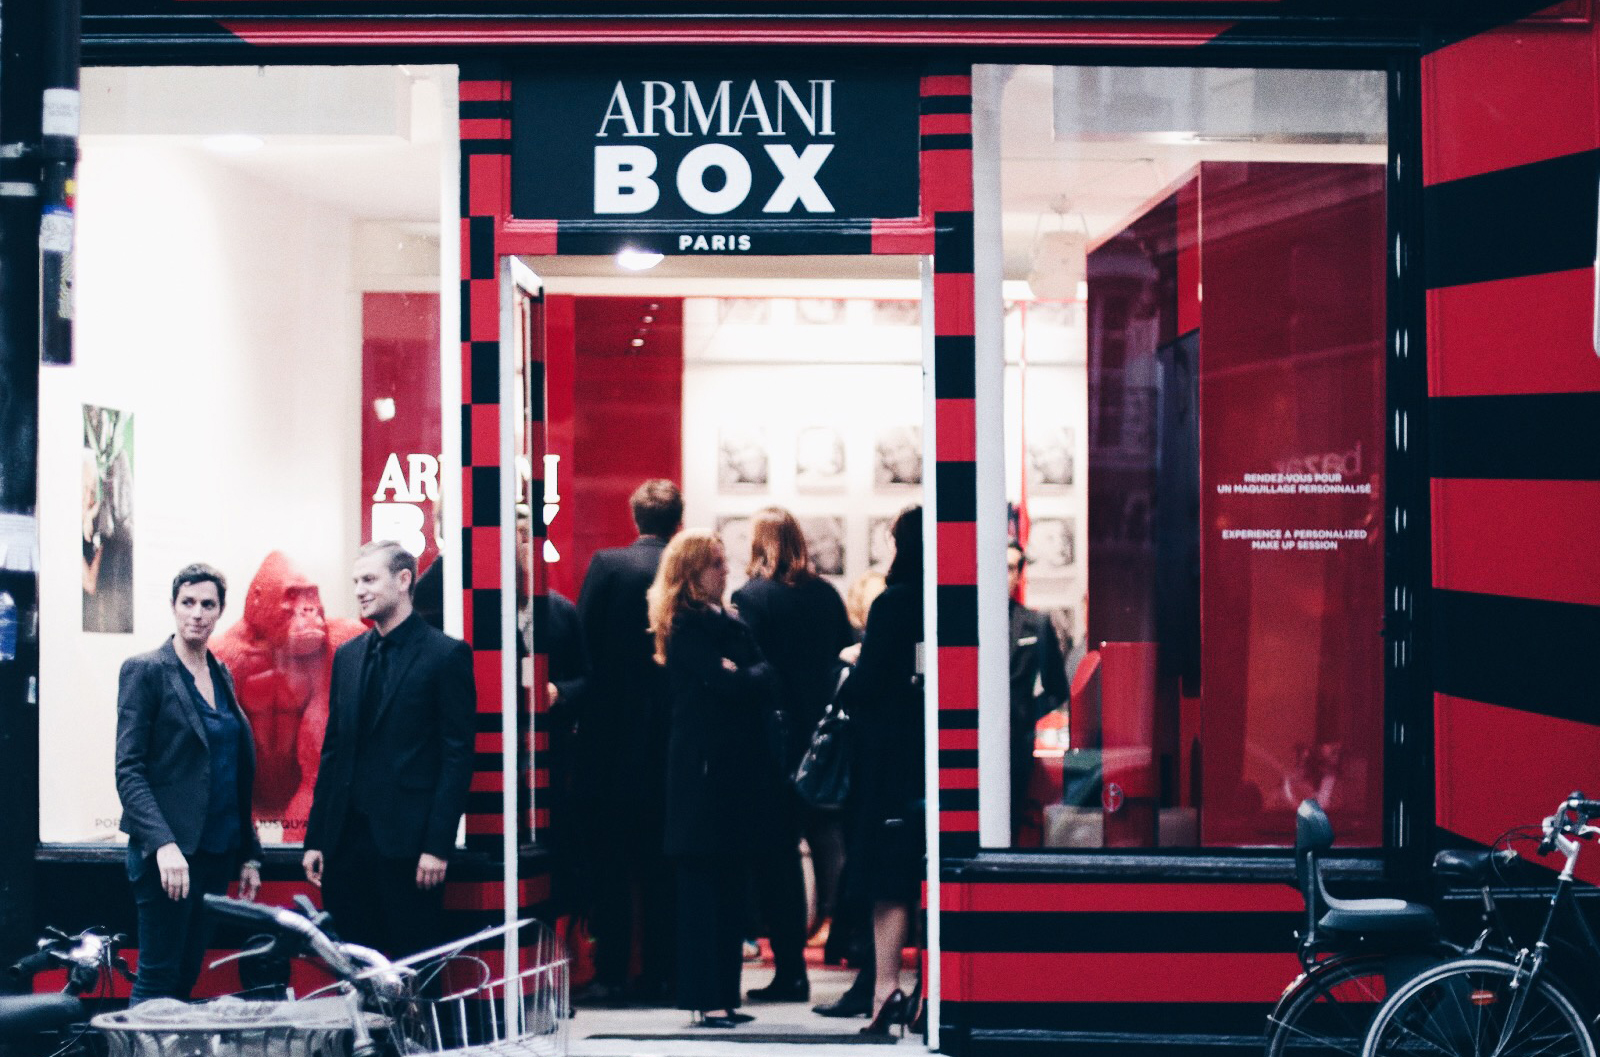 armani box boutique maquillage beauté paris